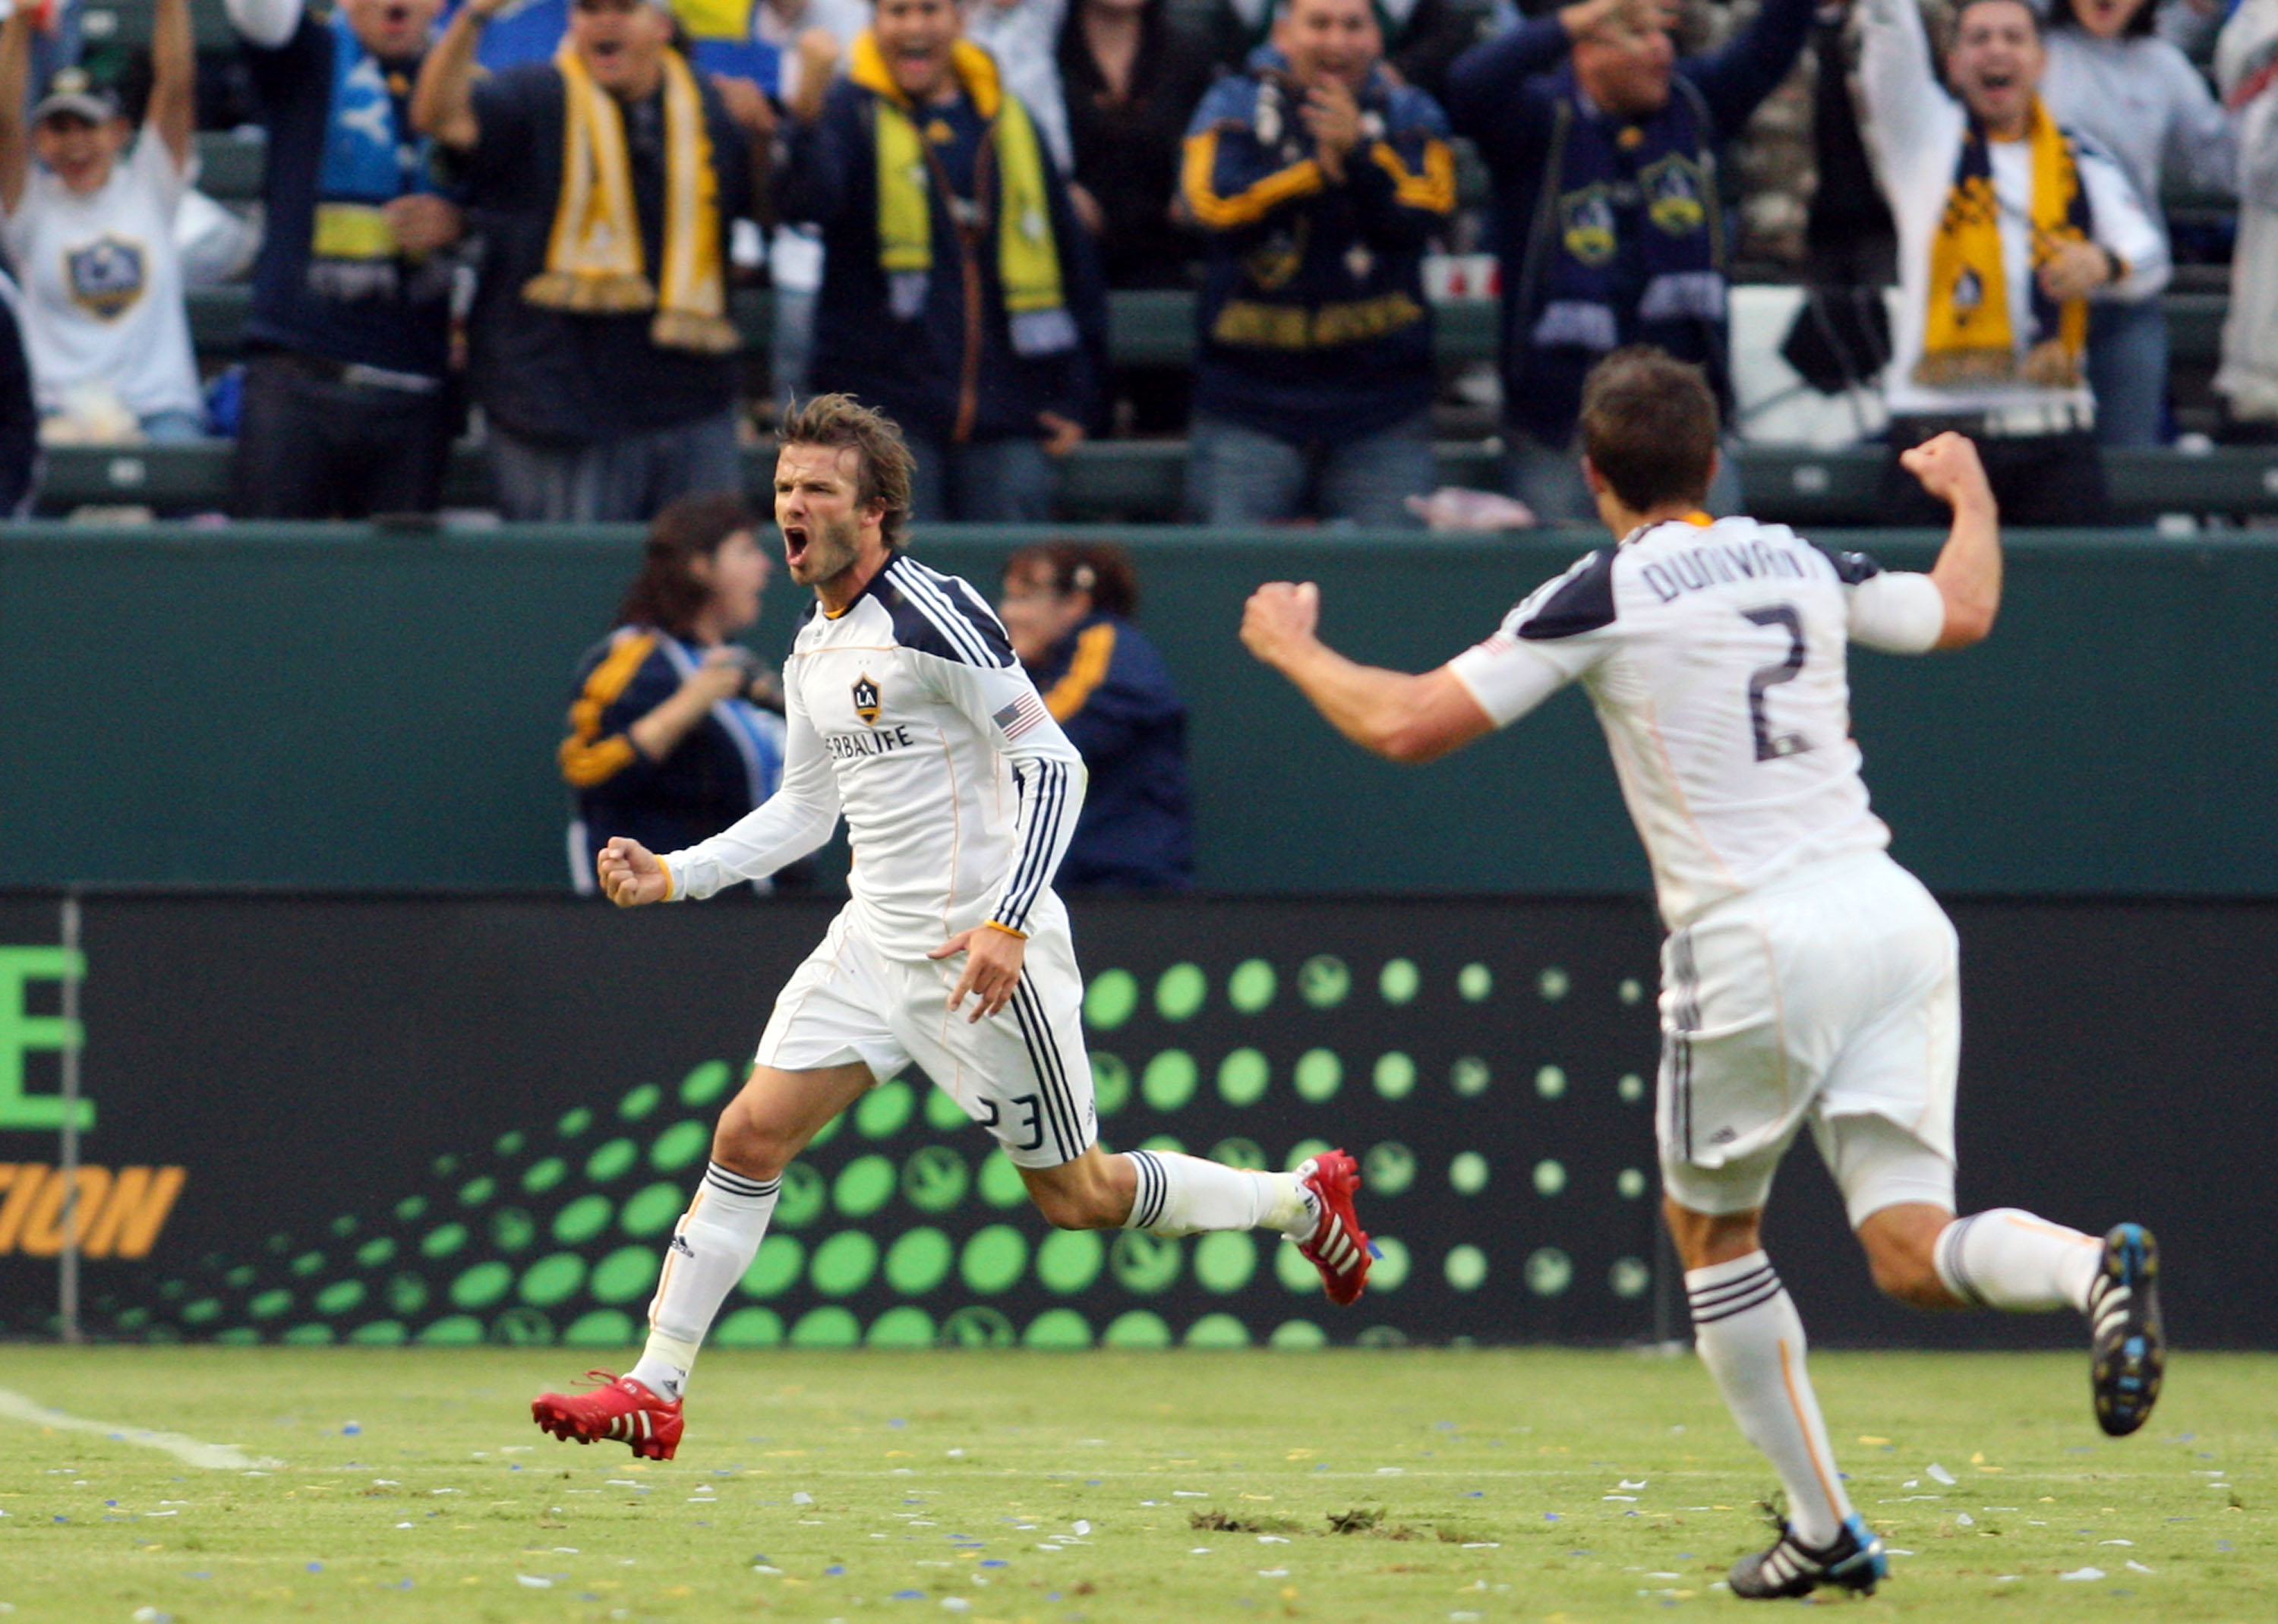 CARSON, CA - OCTOBER 24:  David Beckham #23 of the Los Angeles Galaxy celebrates his first half goal against FC Dallas during the MLS match on October 24, 2010 in Carson, California.  (Photo by Victor Decolongon/Getty Images)